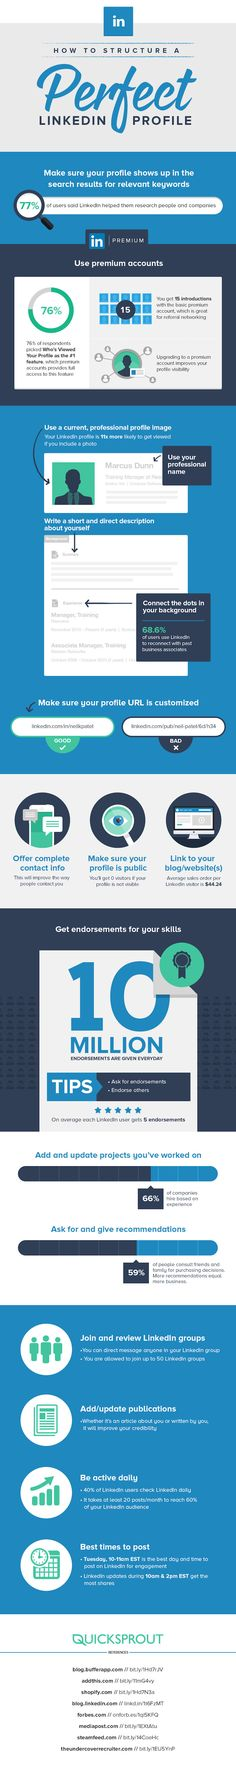 How to structure a perfect linkedin profile [INFOGRAPHIC] #linkedin #profile #infographic